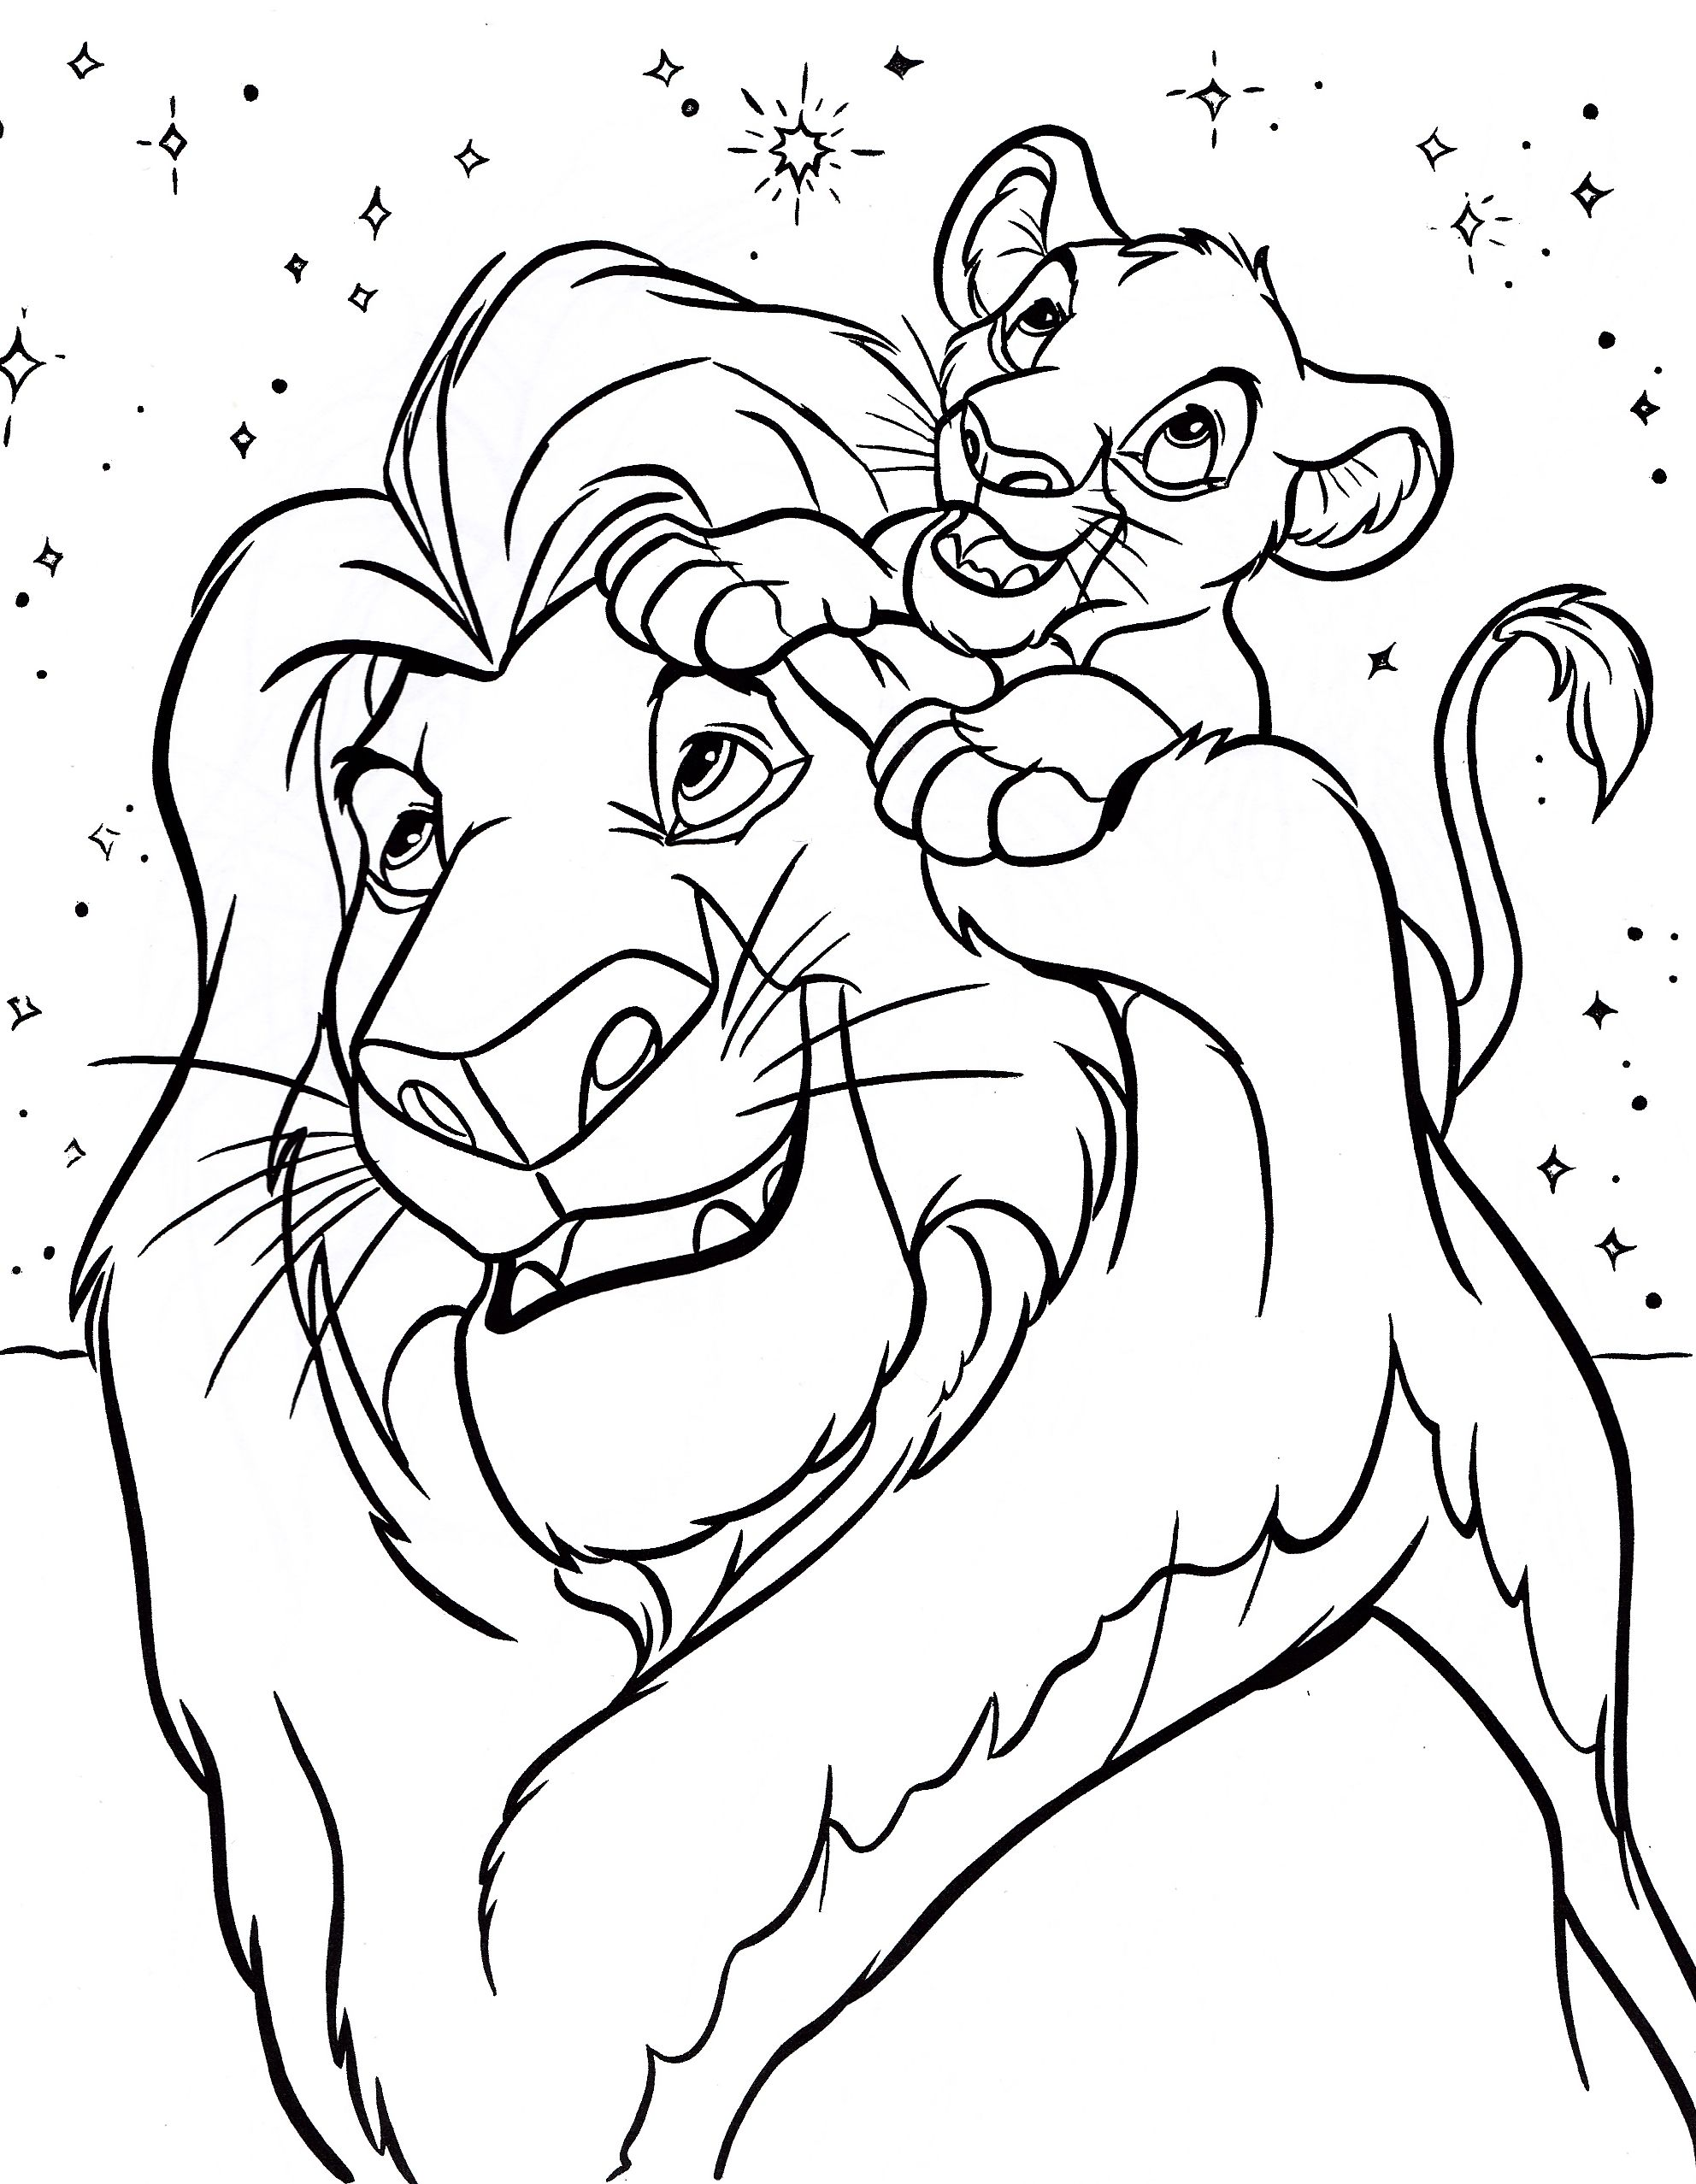 1984x2555 Amazing Disney Coloring Pages Printable Image For Colouring Sheets